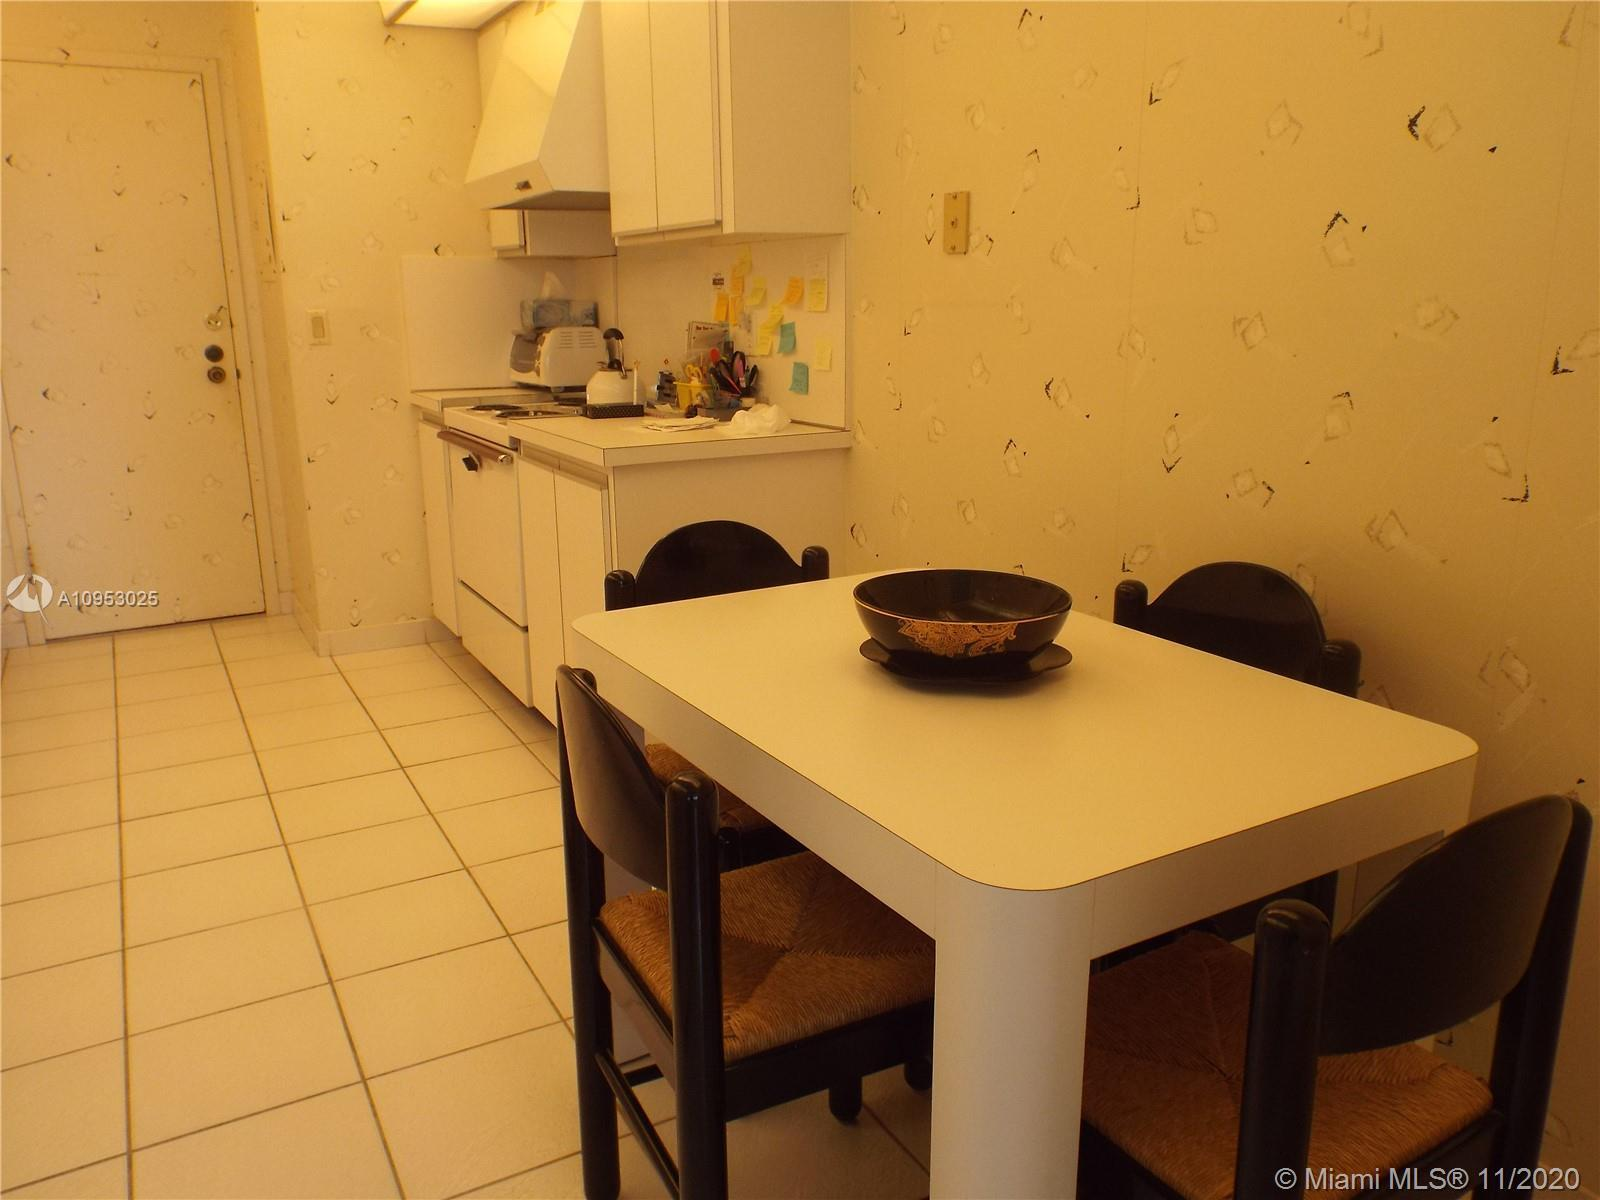 LARGE CORNER UNIT WITH PARK + OCEAN VIEWS FROM LOW FLOOR CONDO. RENOVATED KITCHEN LOTS OF BUILT-INS,